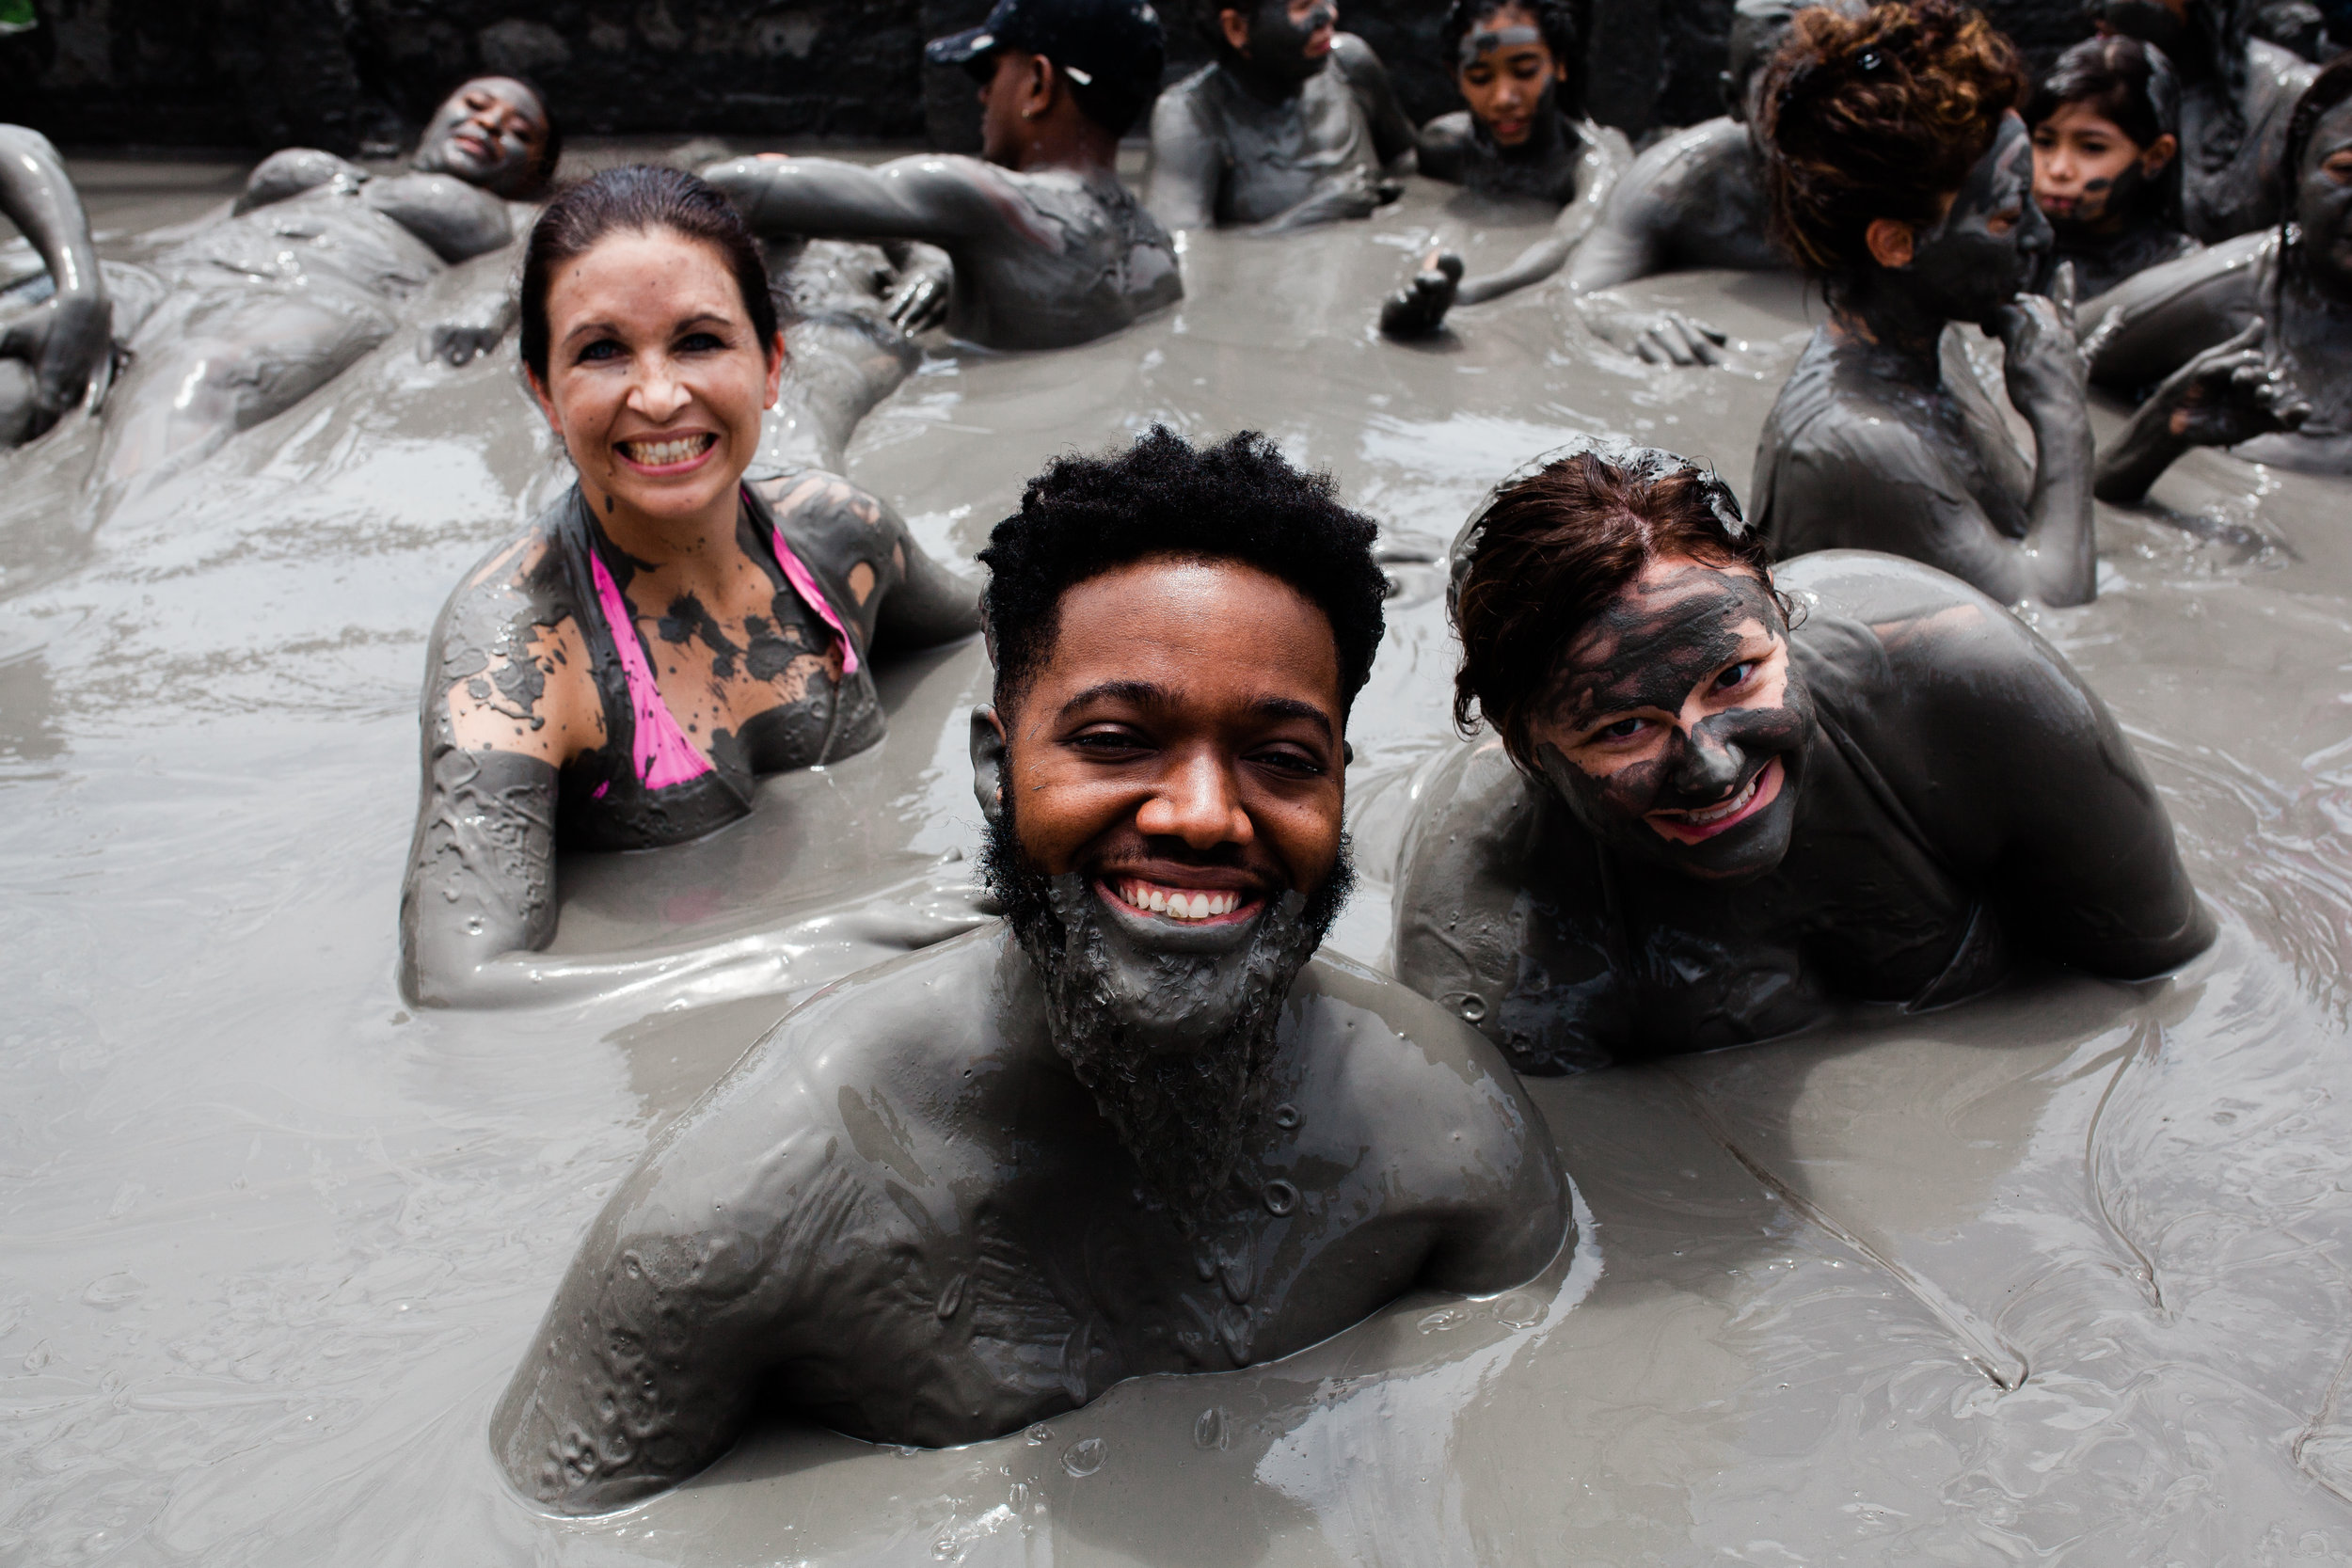 DAY 3: CARTAGENA - Soak in a natural volcanic mud bath at El TotumoVisit the Alex Rocha Youth Center and learn how he's working to give youth an alternative to crime and violenceMeals included: breakfast + lunch